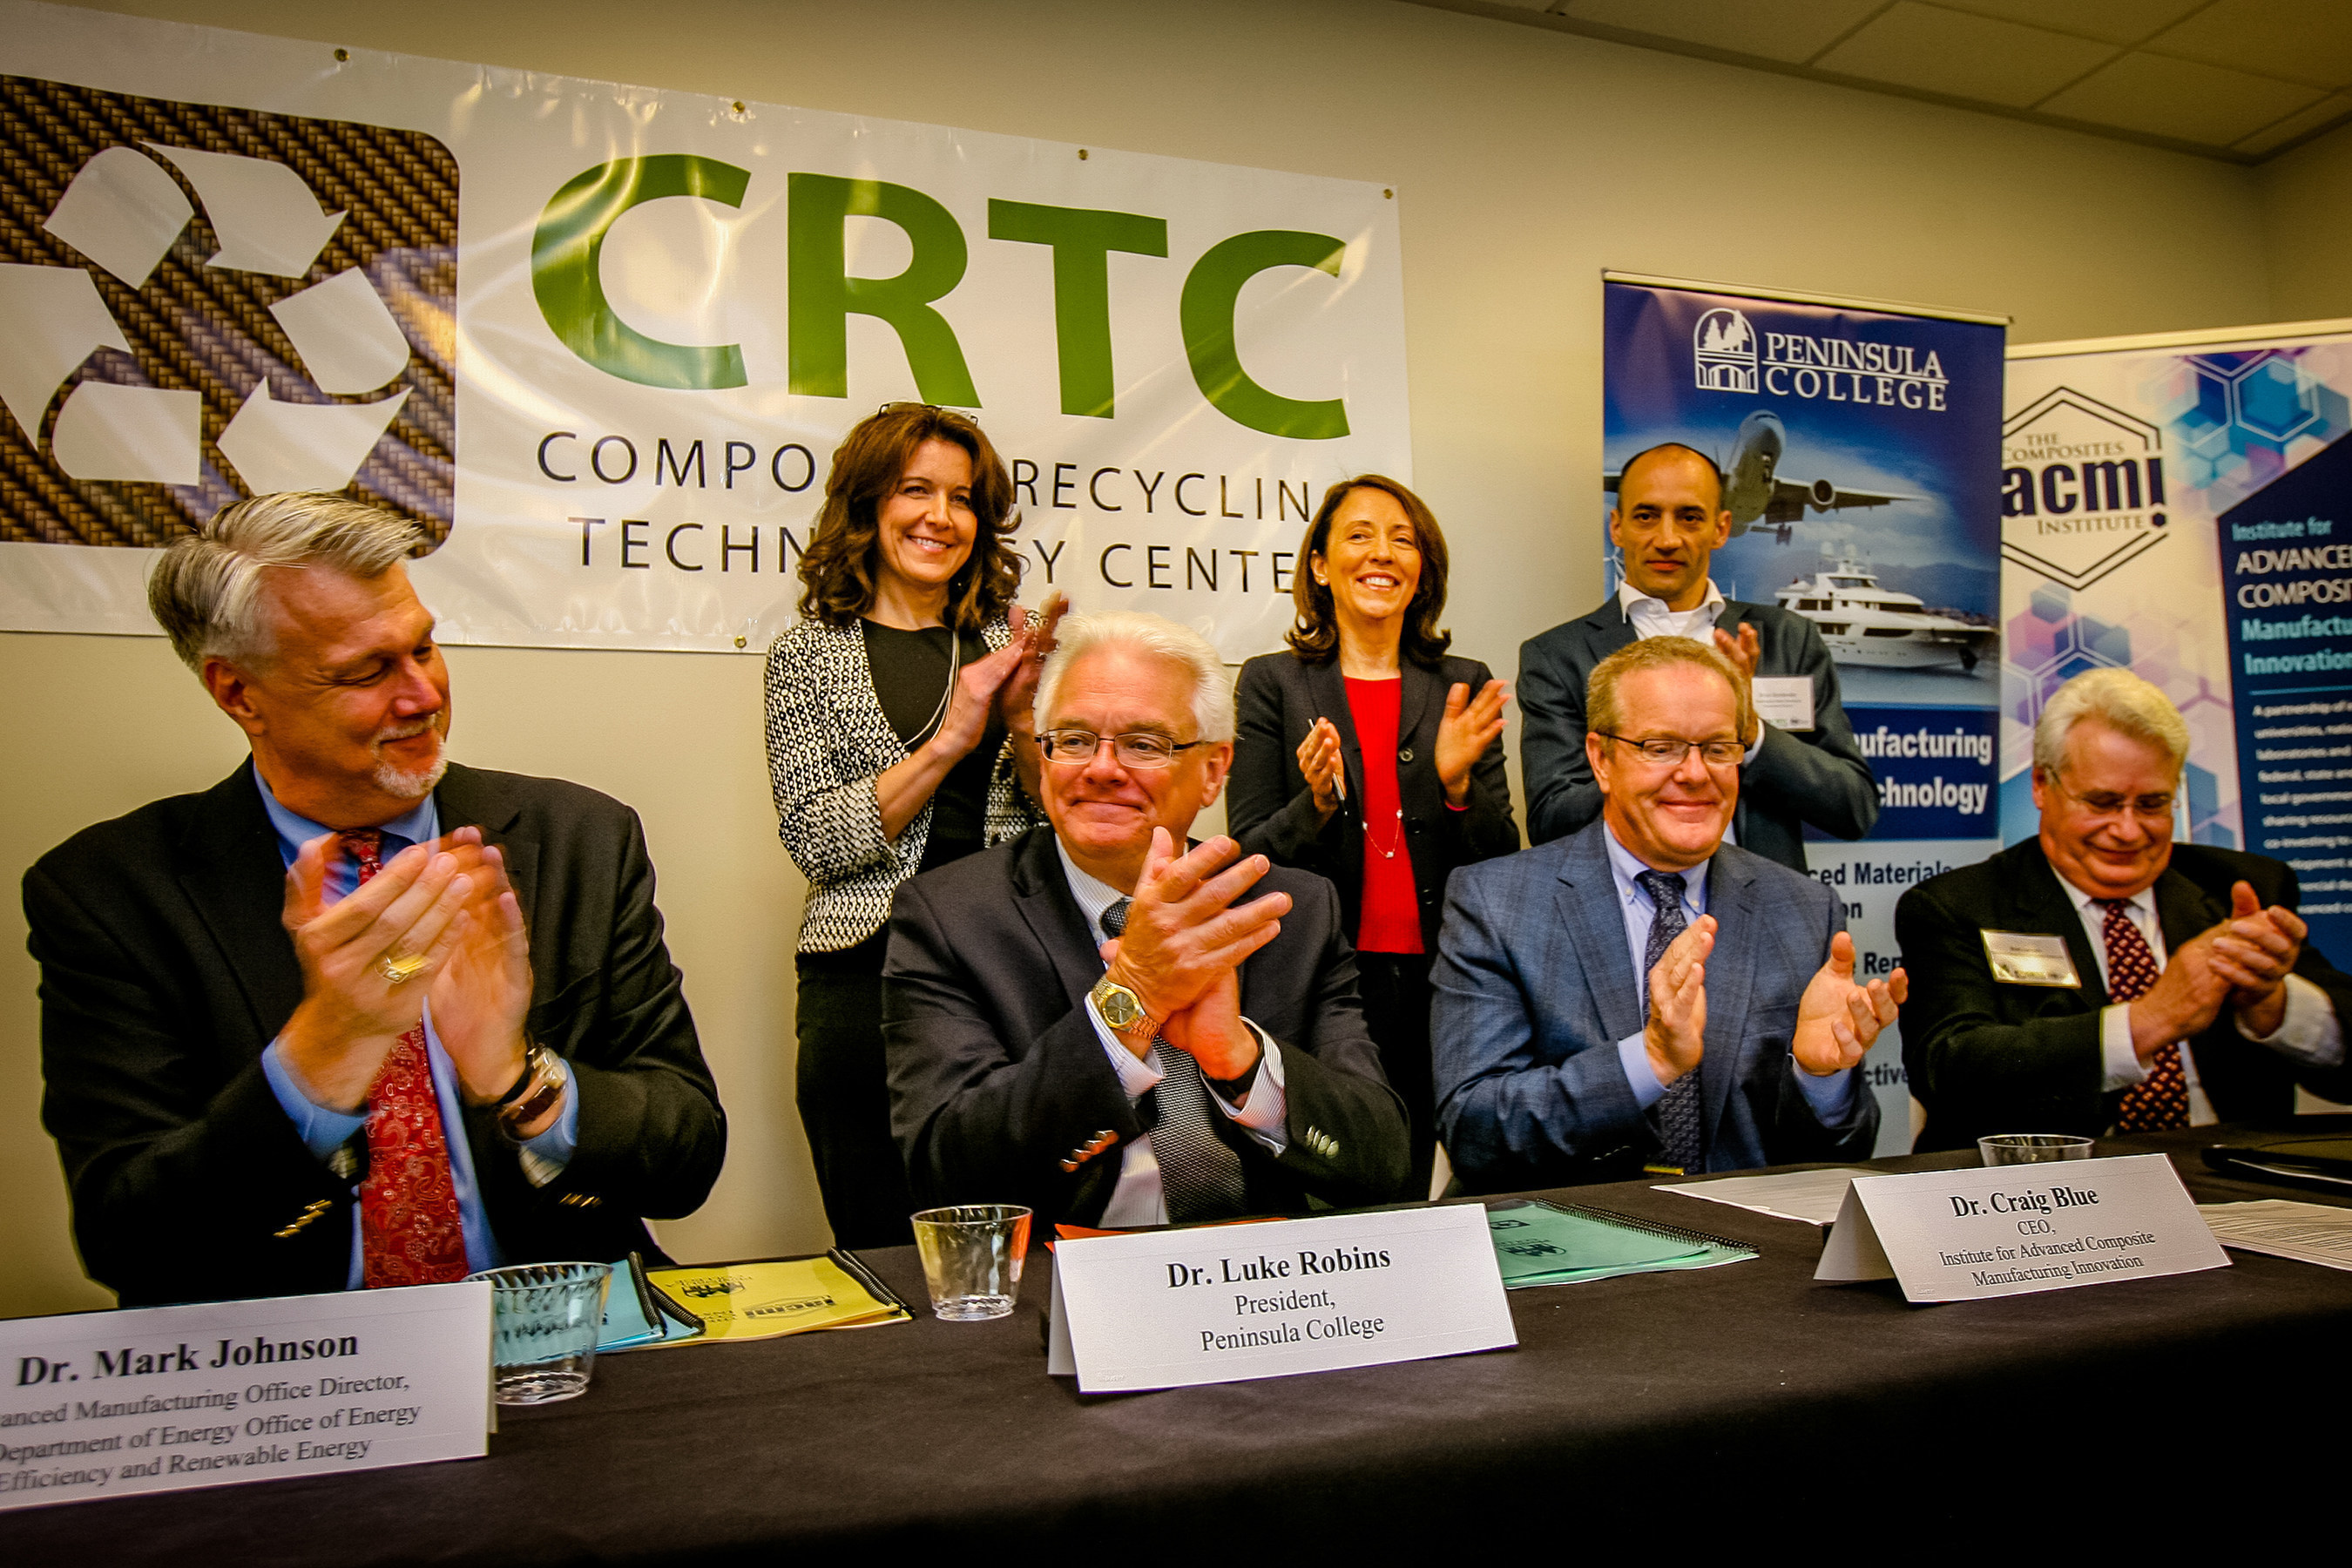 Pioneering Partnerships Announced for Composite Recycling